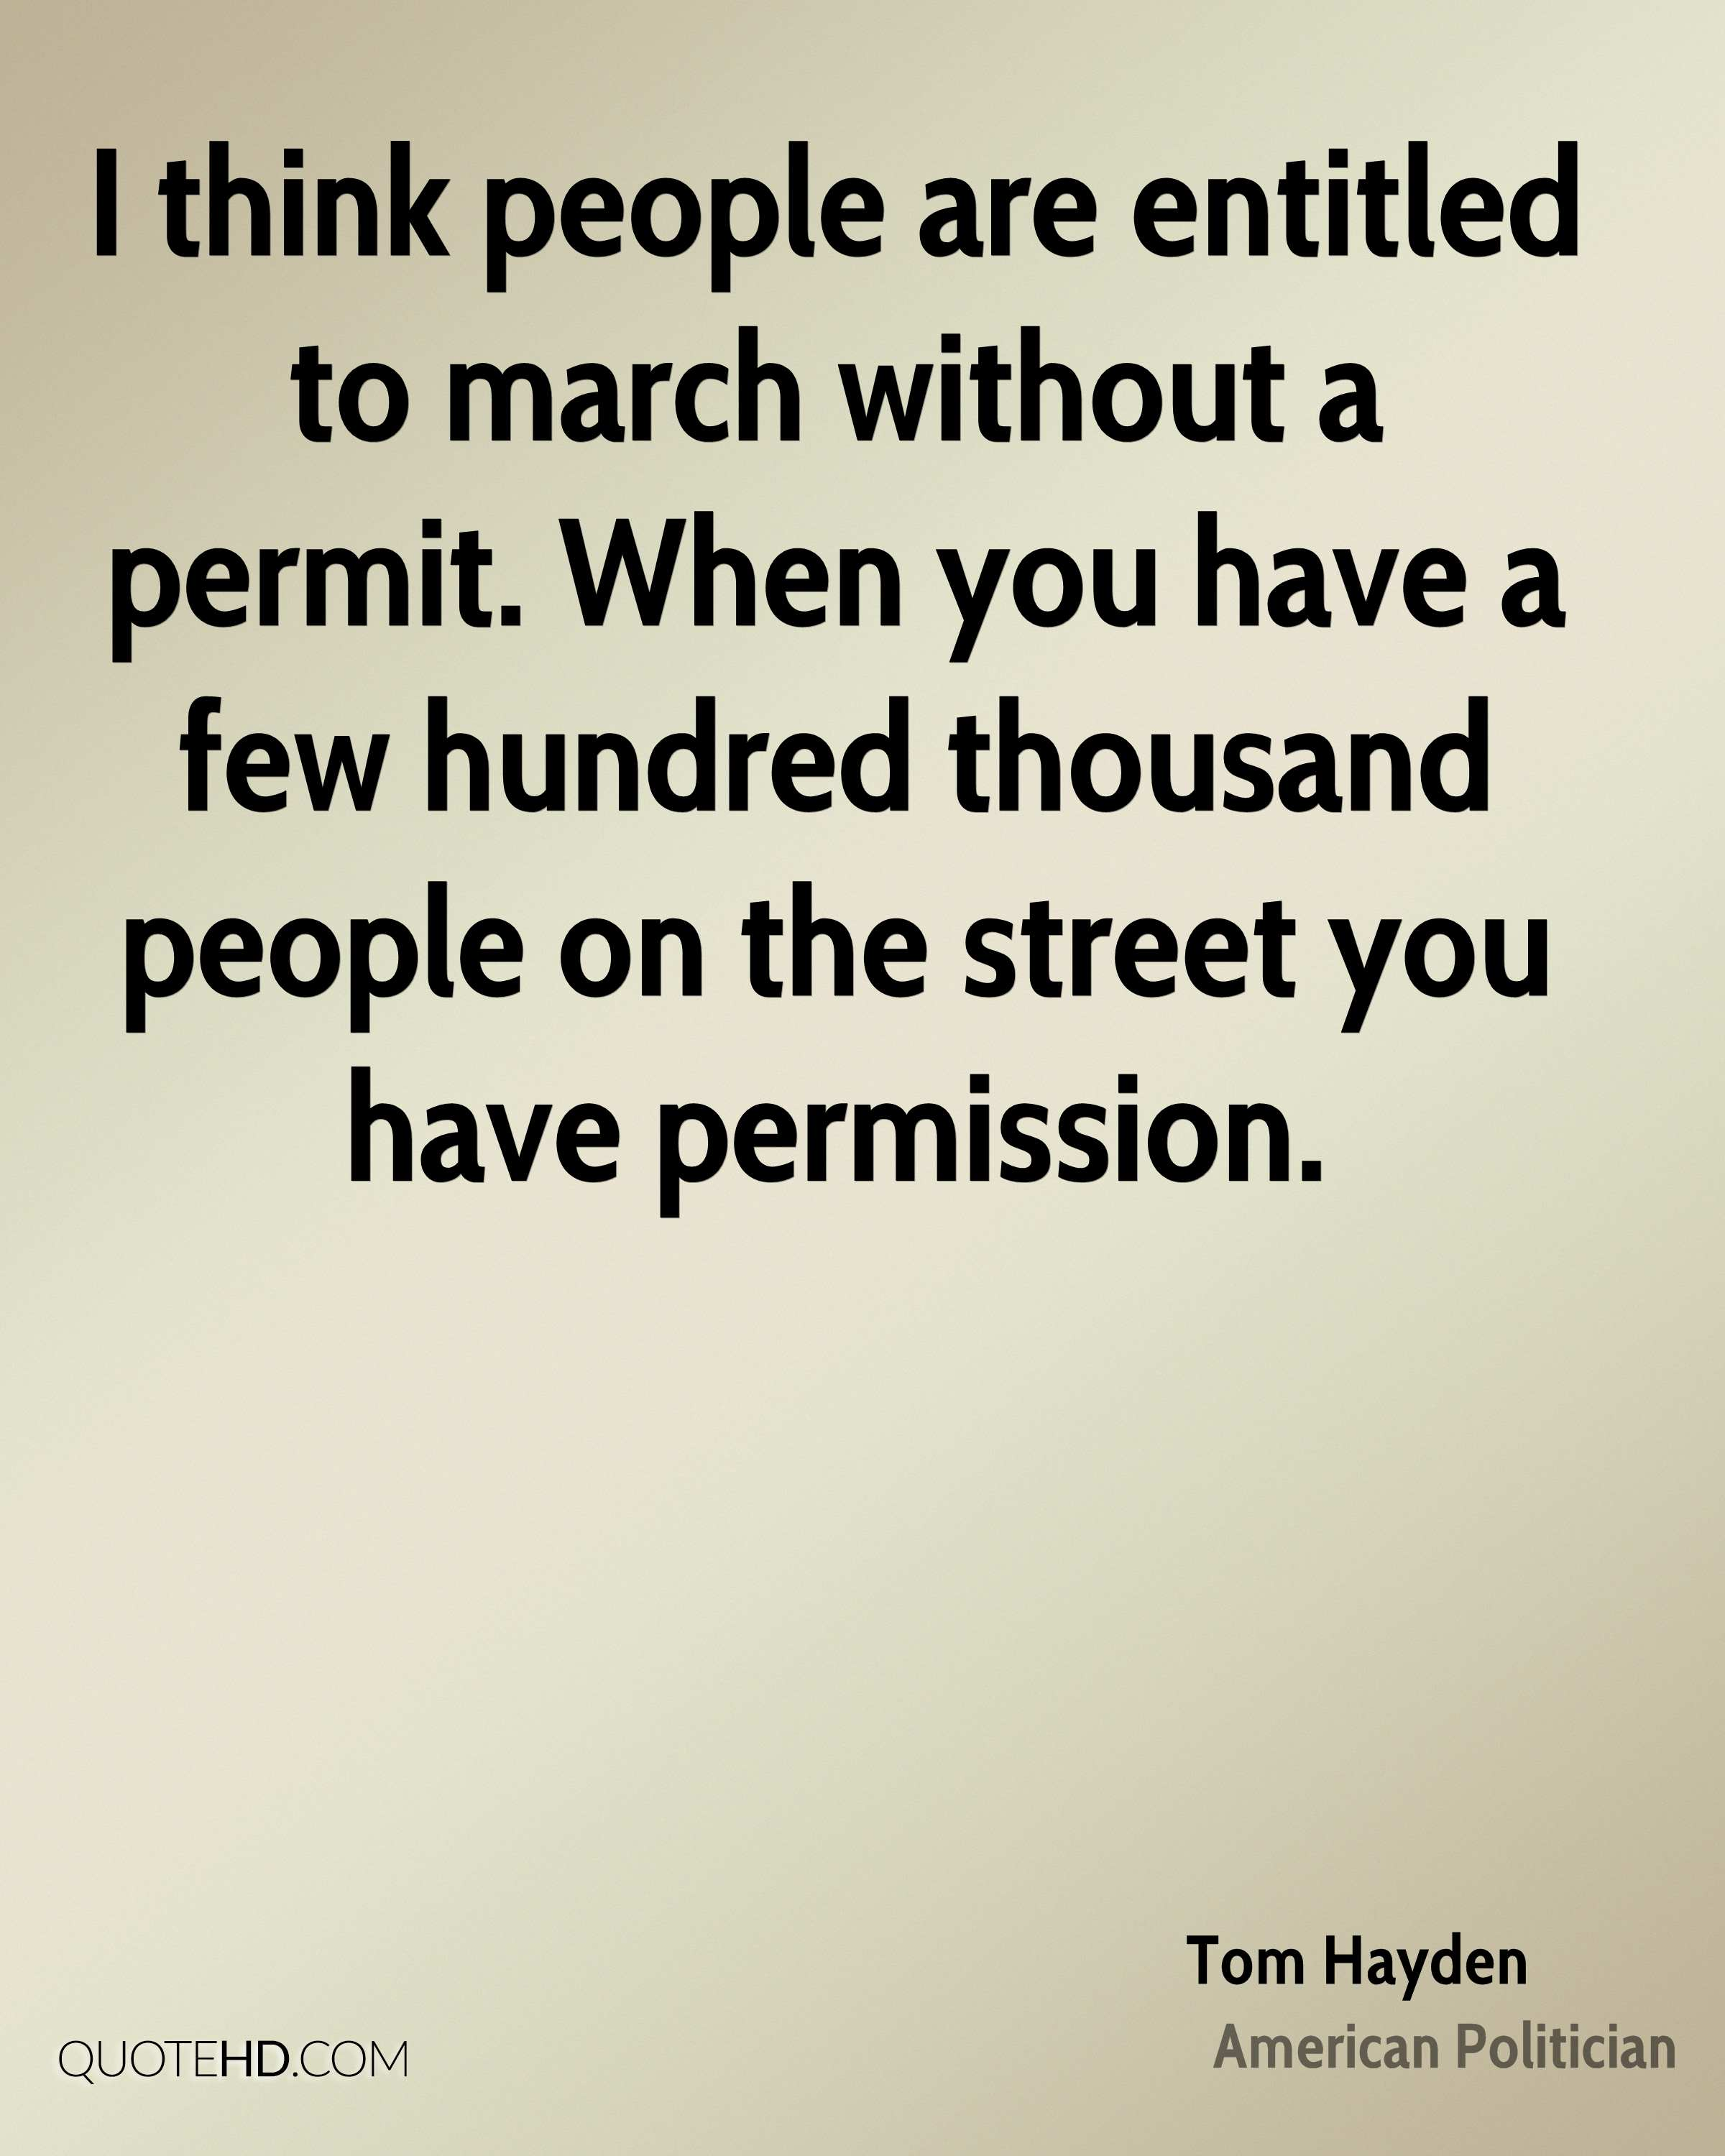 I think people are entitled to march without a permit. When you have a few hundred thousand people on the street you have permission.